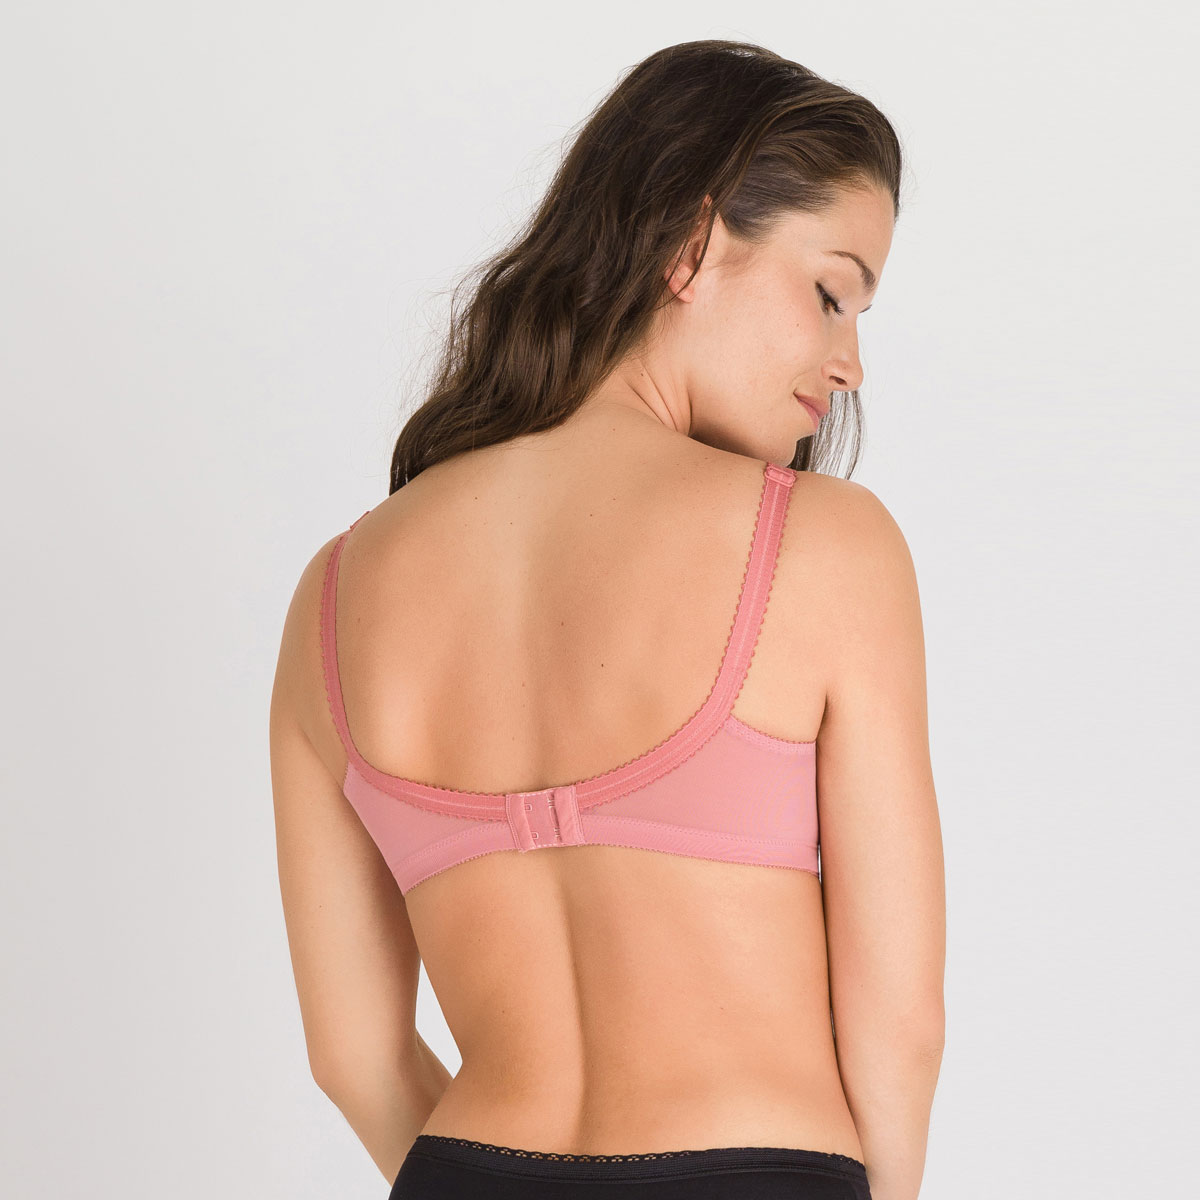 Non-wired Bra in Pink - Cross Your Heart 556-PLAYTEX